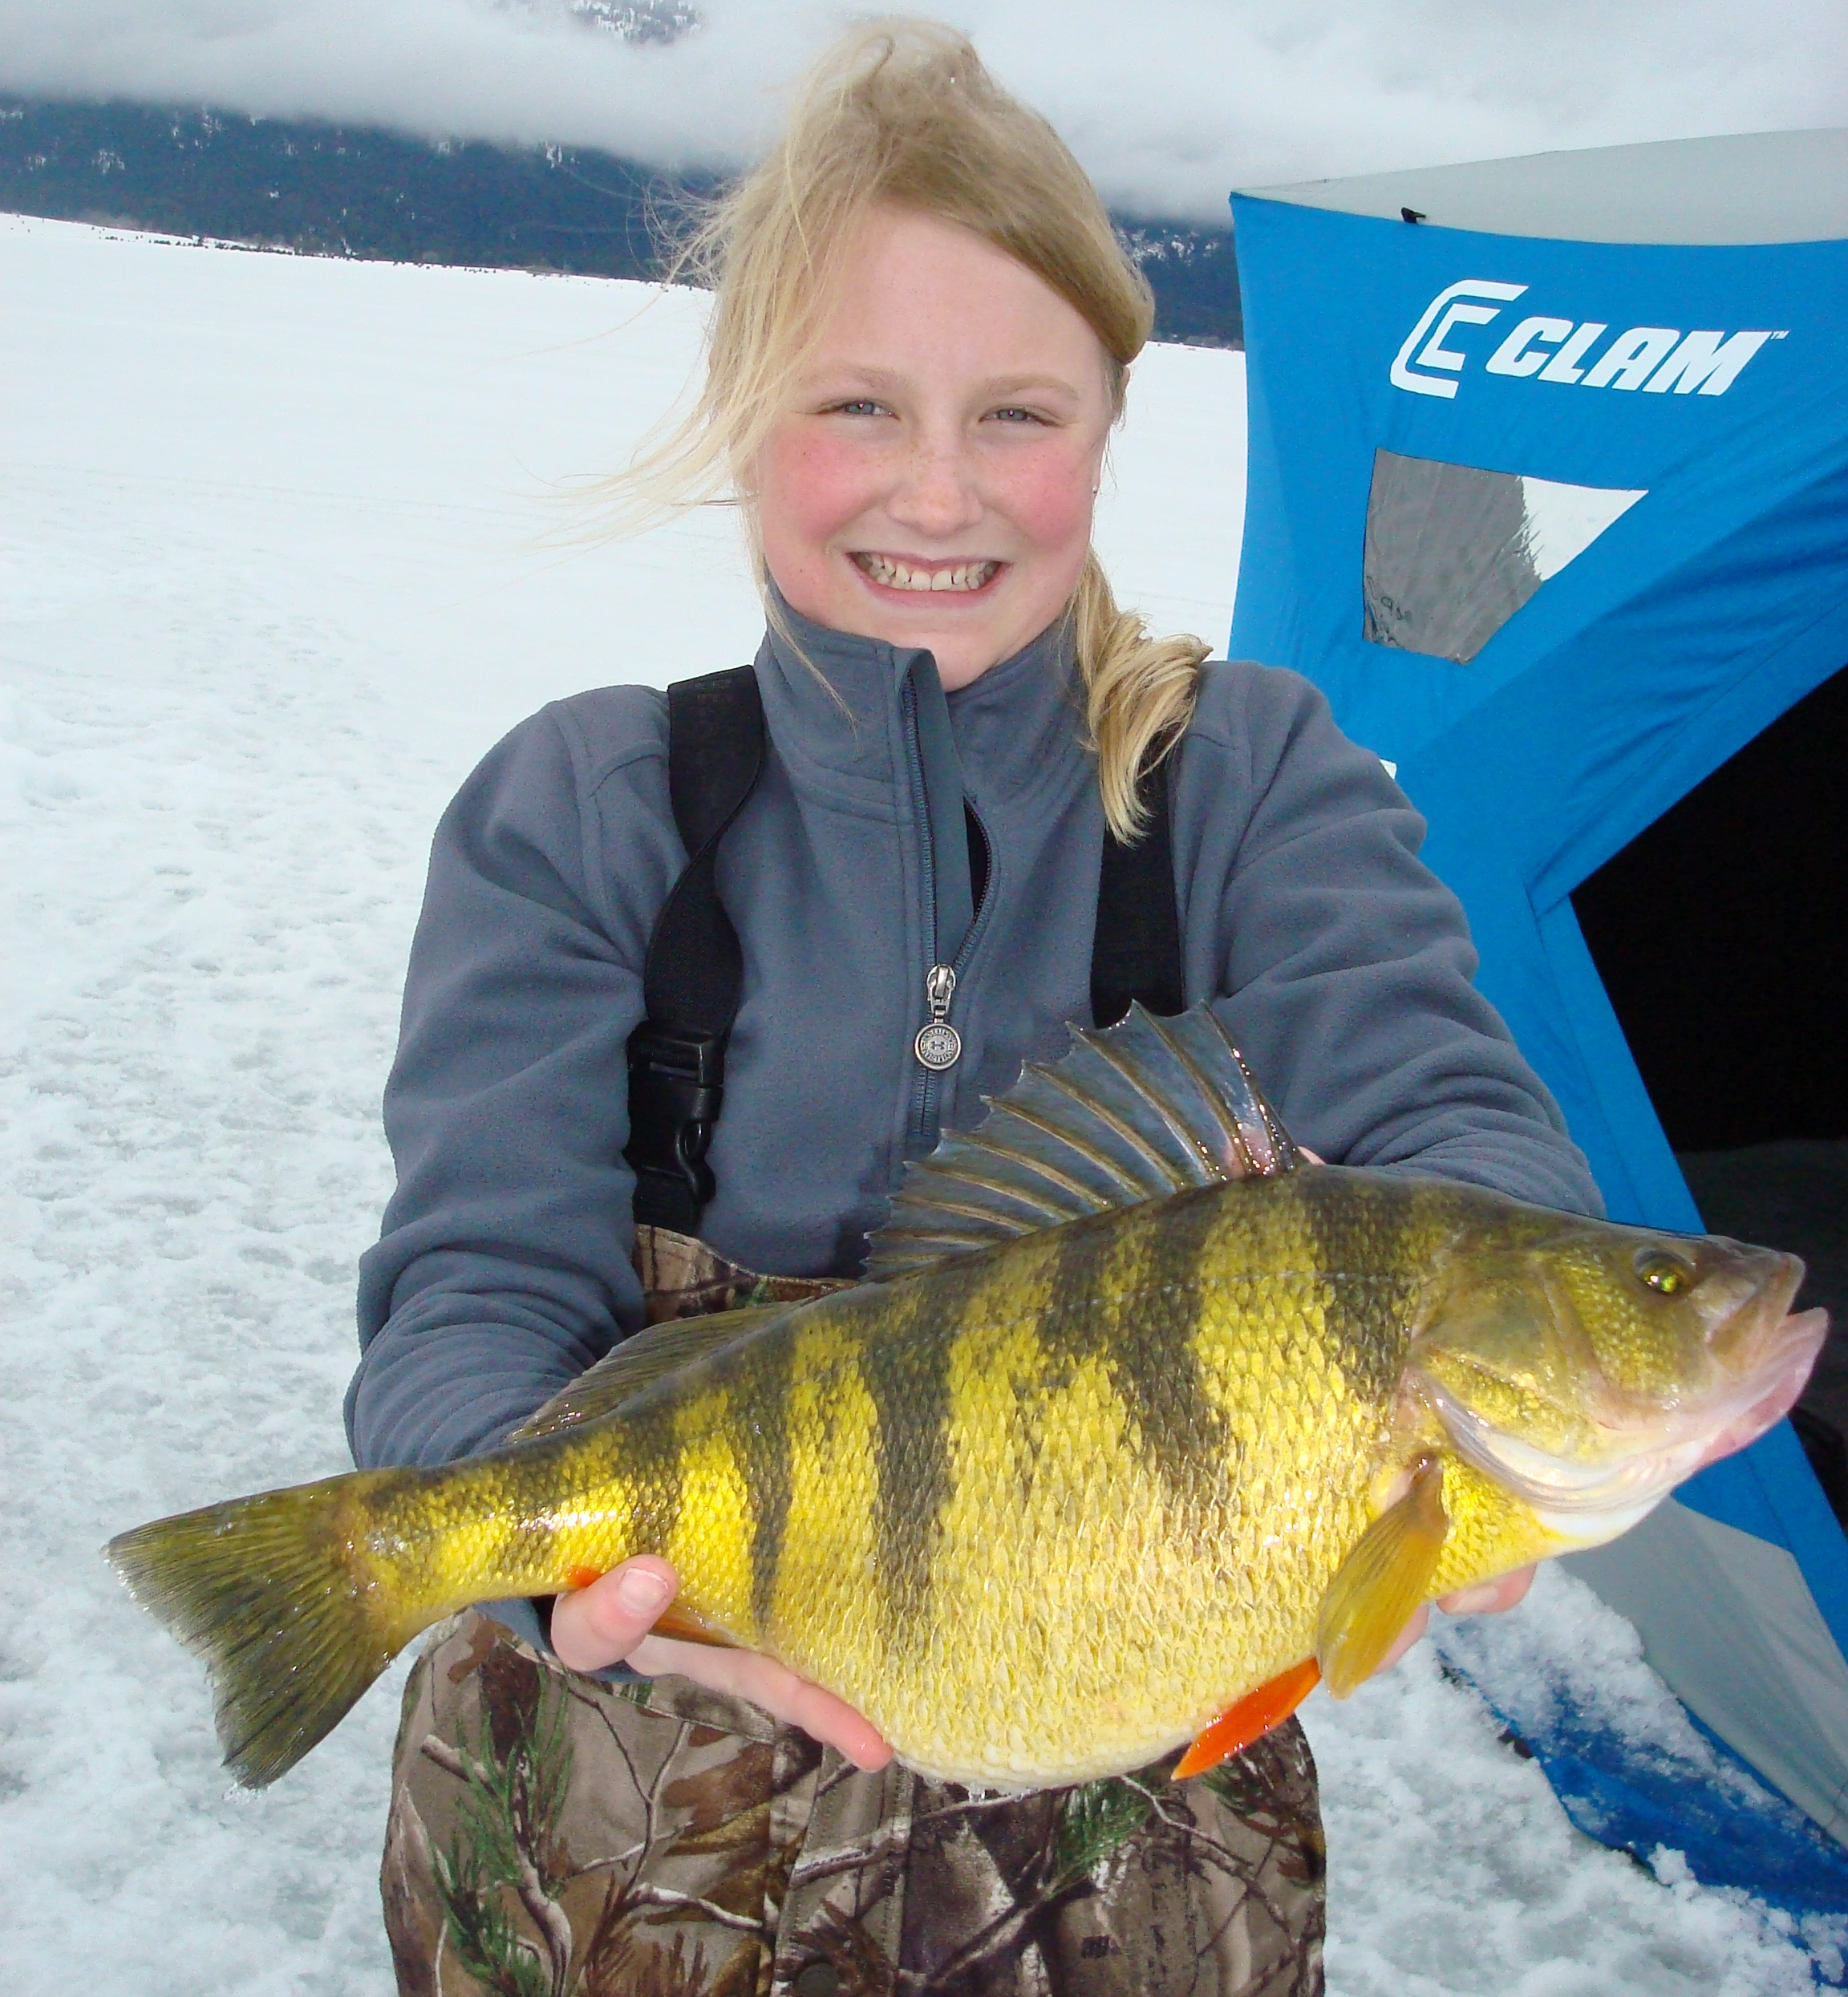 idaho girl 39 s perch declared ice fishing world record the